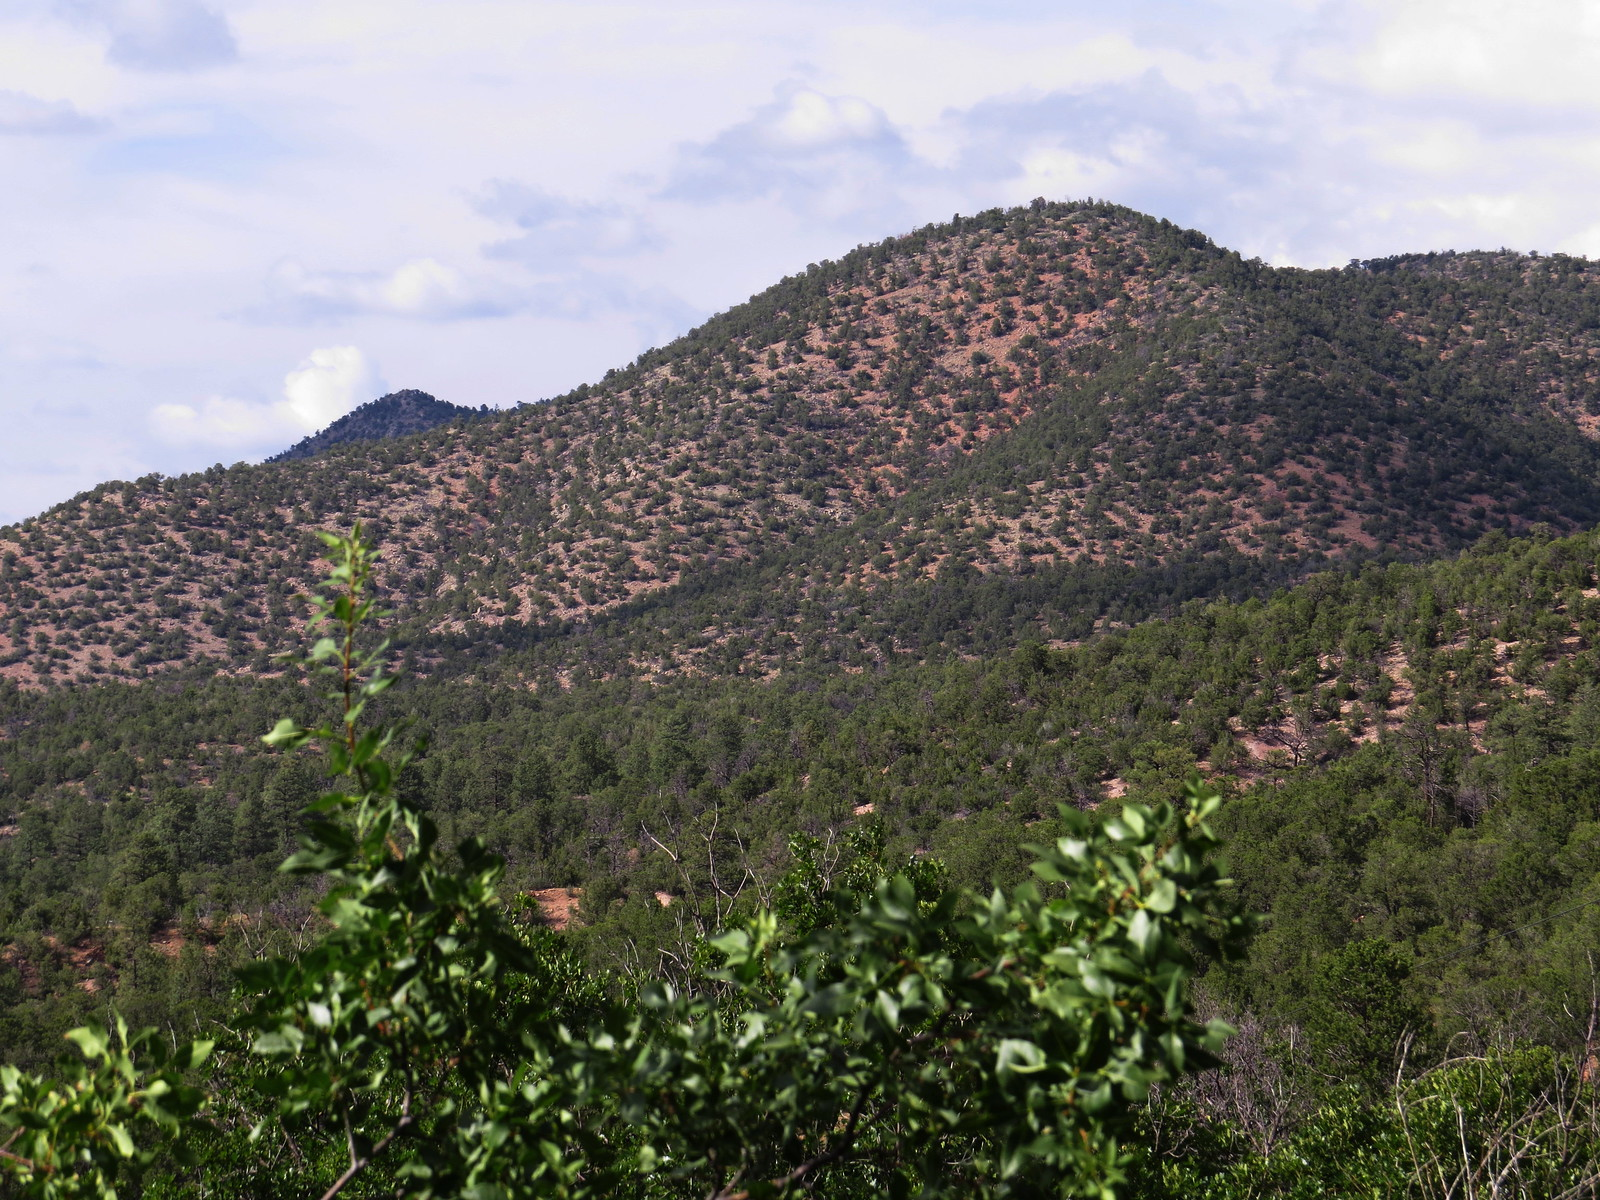 Upper Pacheco Canyon Road, Santa Fe NF, NM